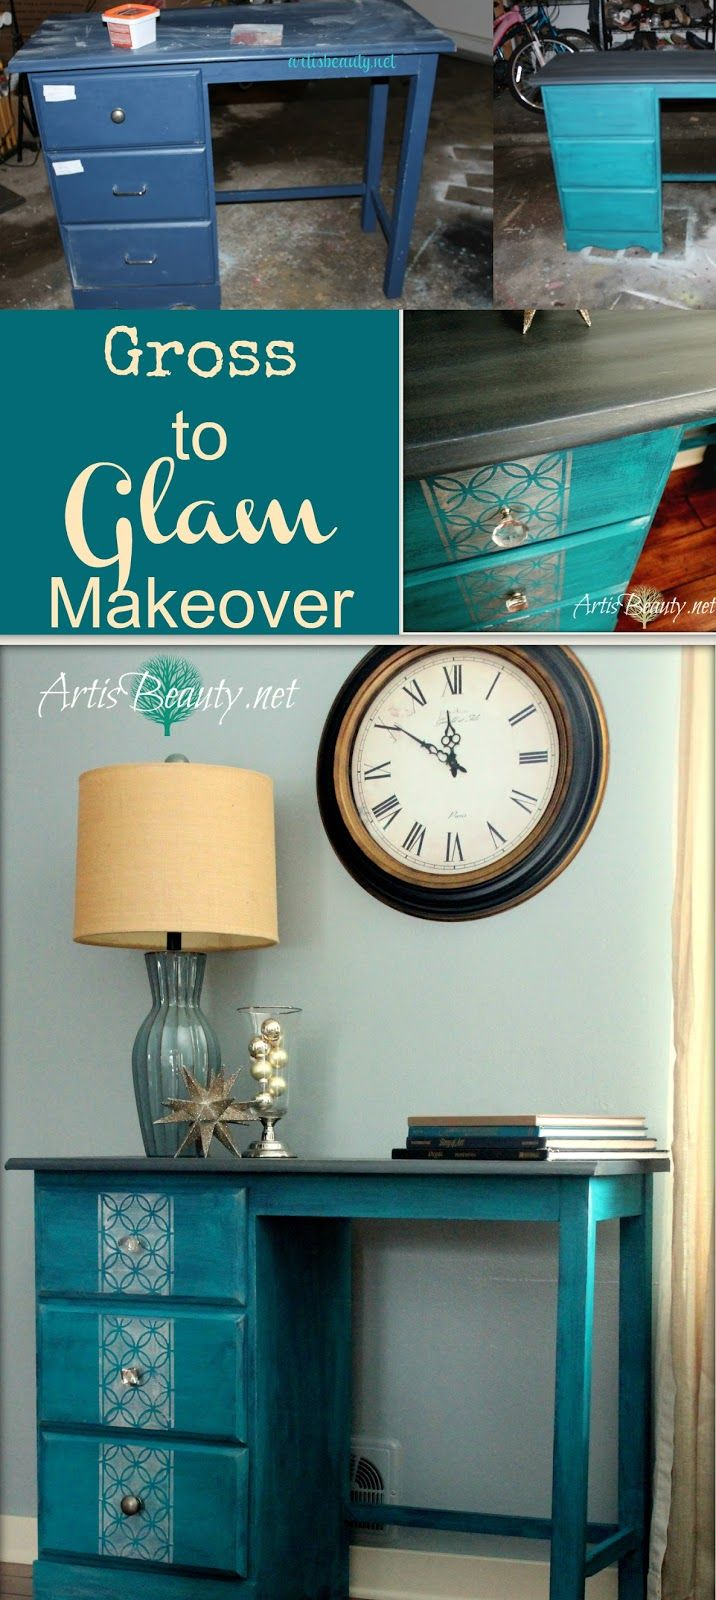 ART IS BEAUTY: Peacock blue and silver Vintage glamour Goodwill Desk Makeover